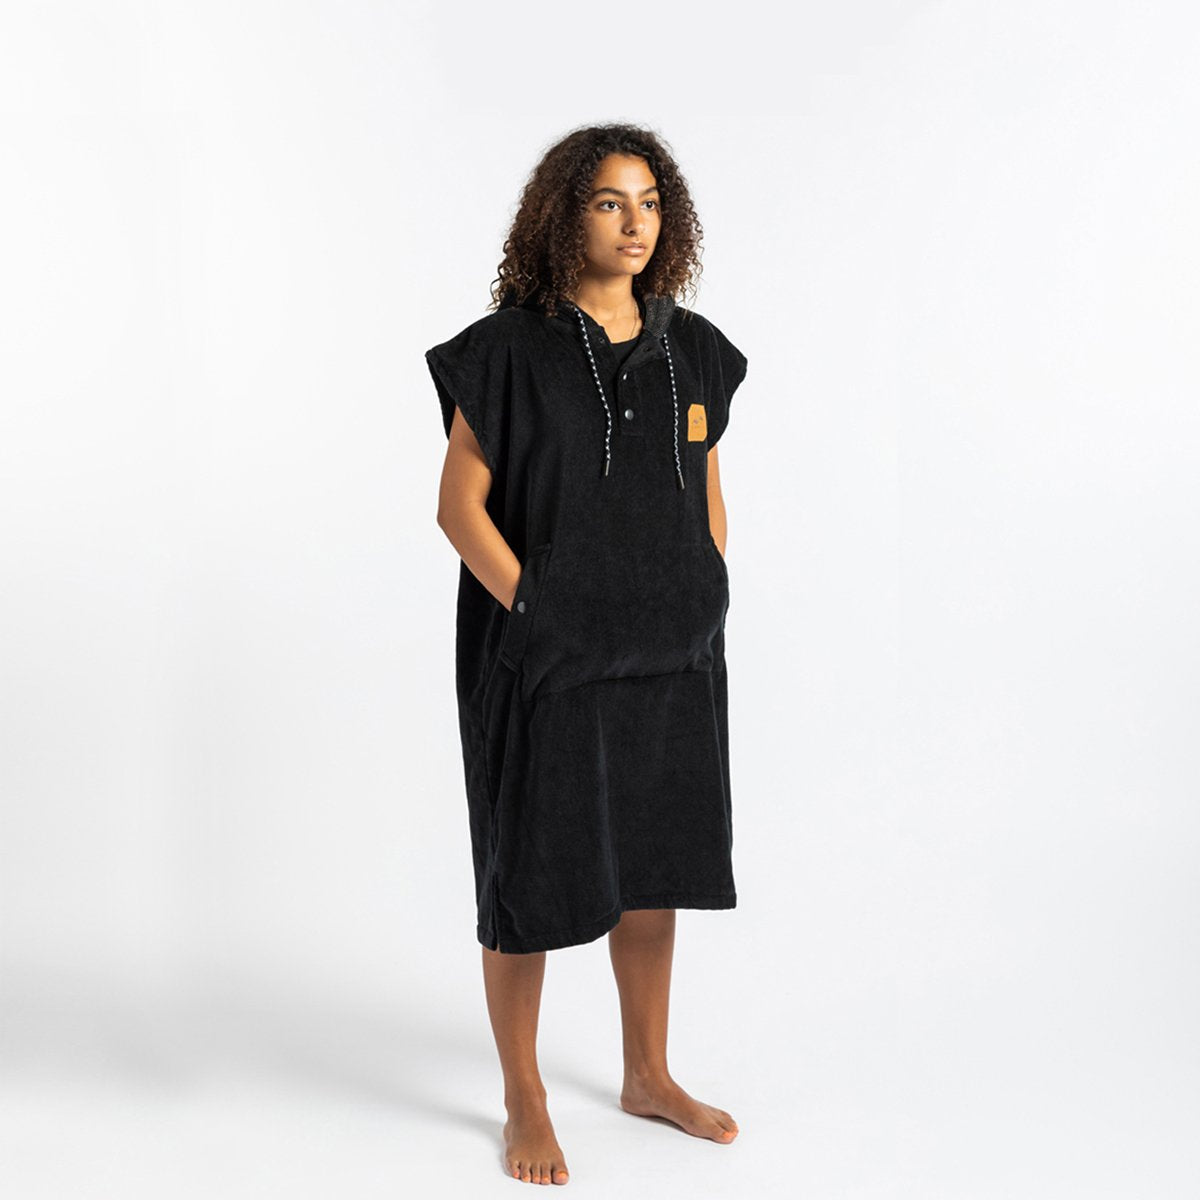 THE DIGS PONCHO - S/M